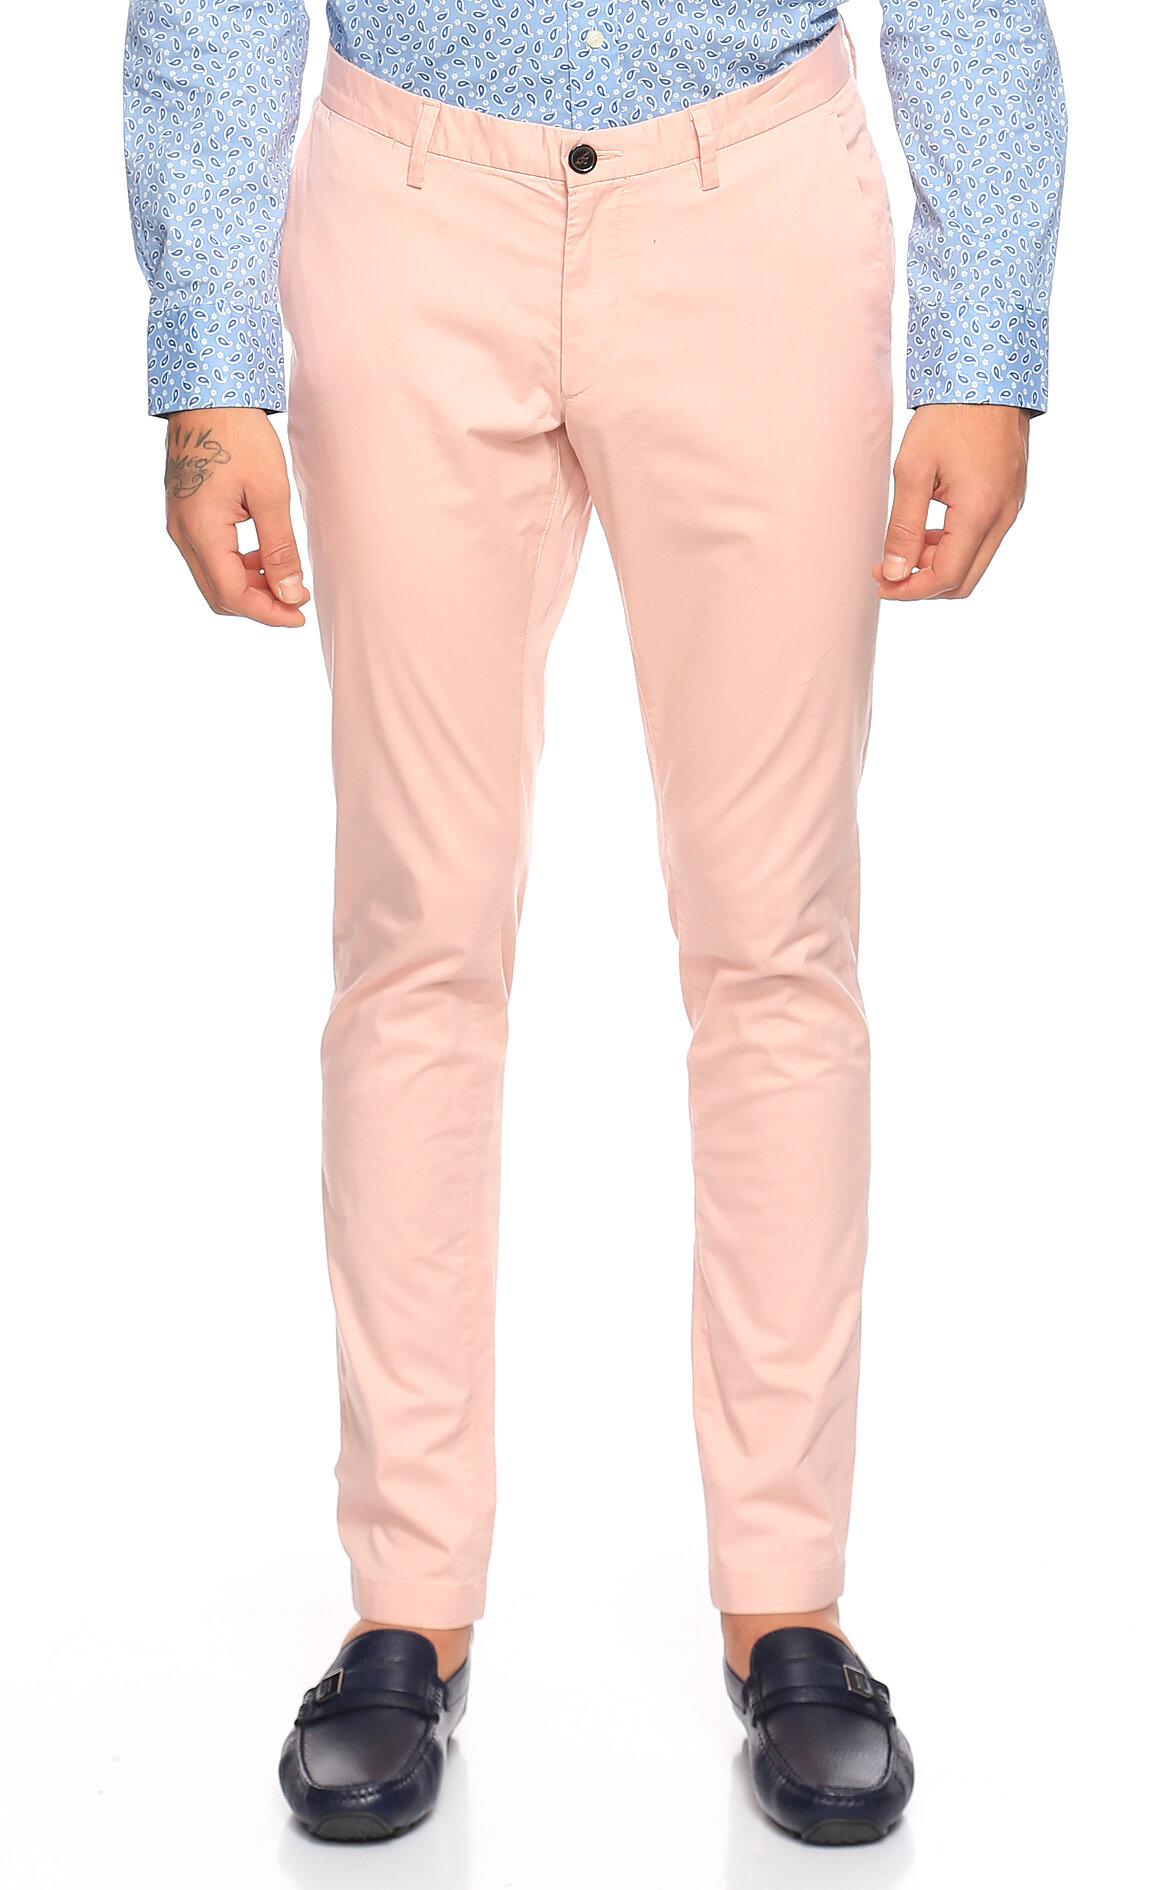 Michael Kors Collection-Michael Kors Collection Pembe Pantolon